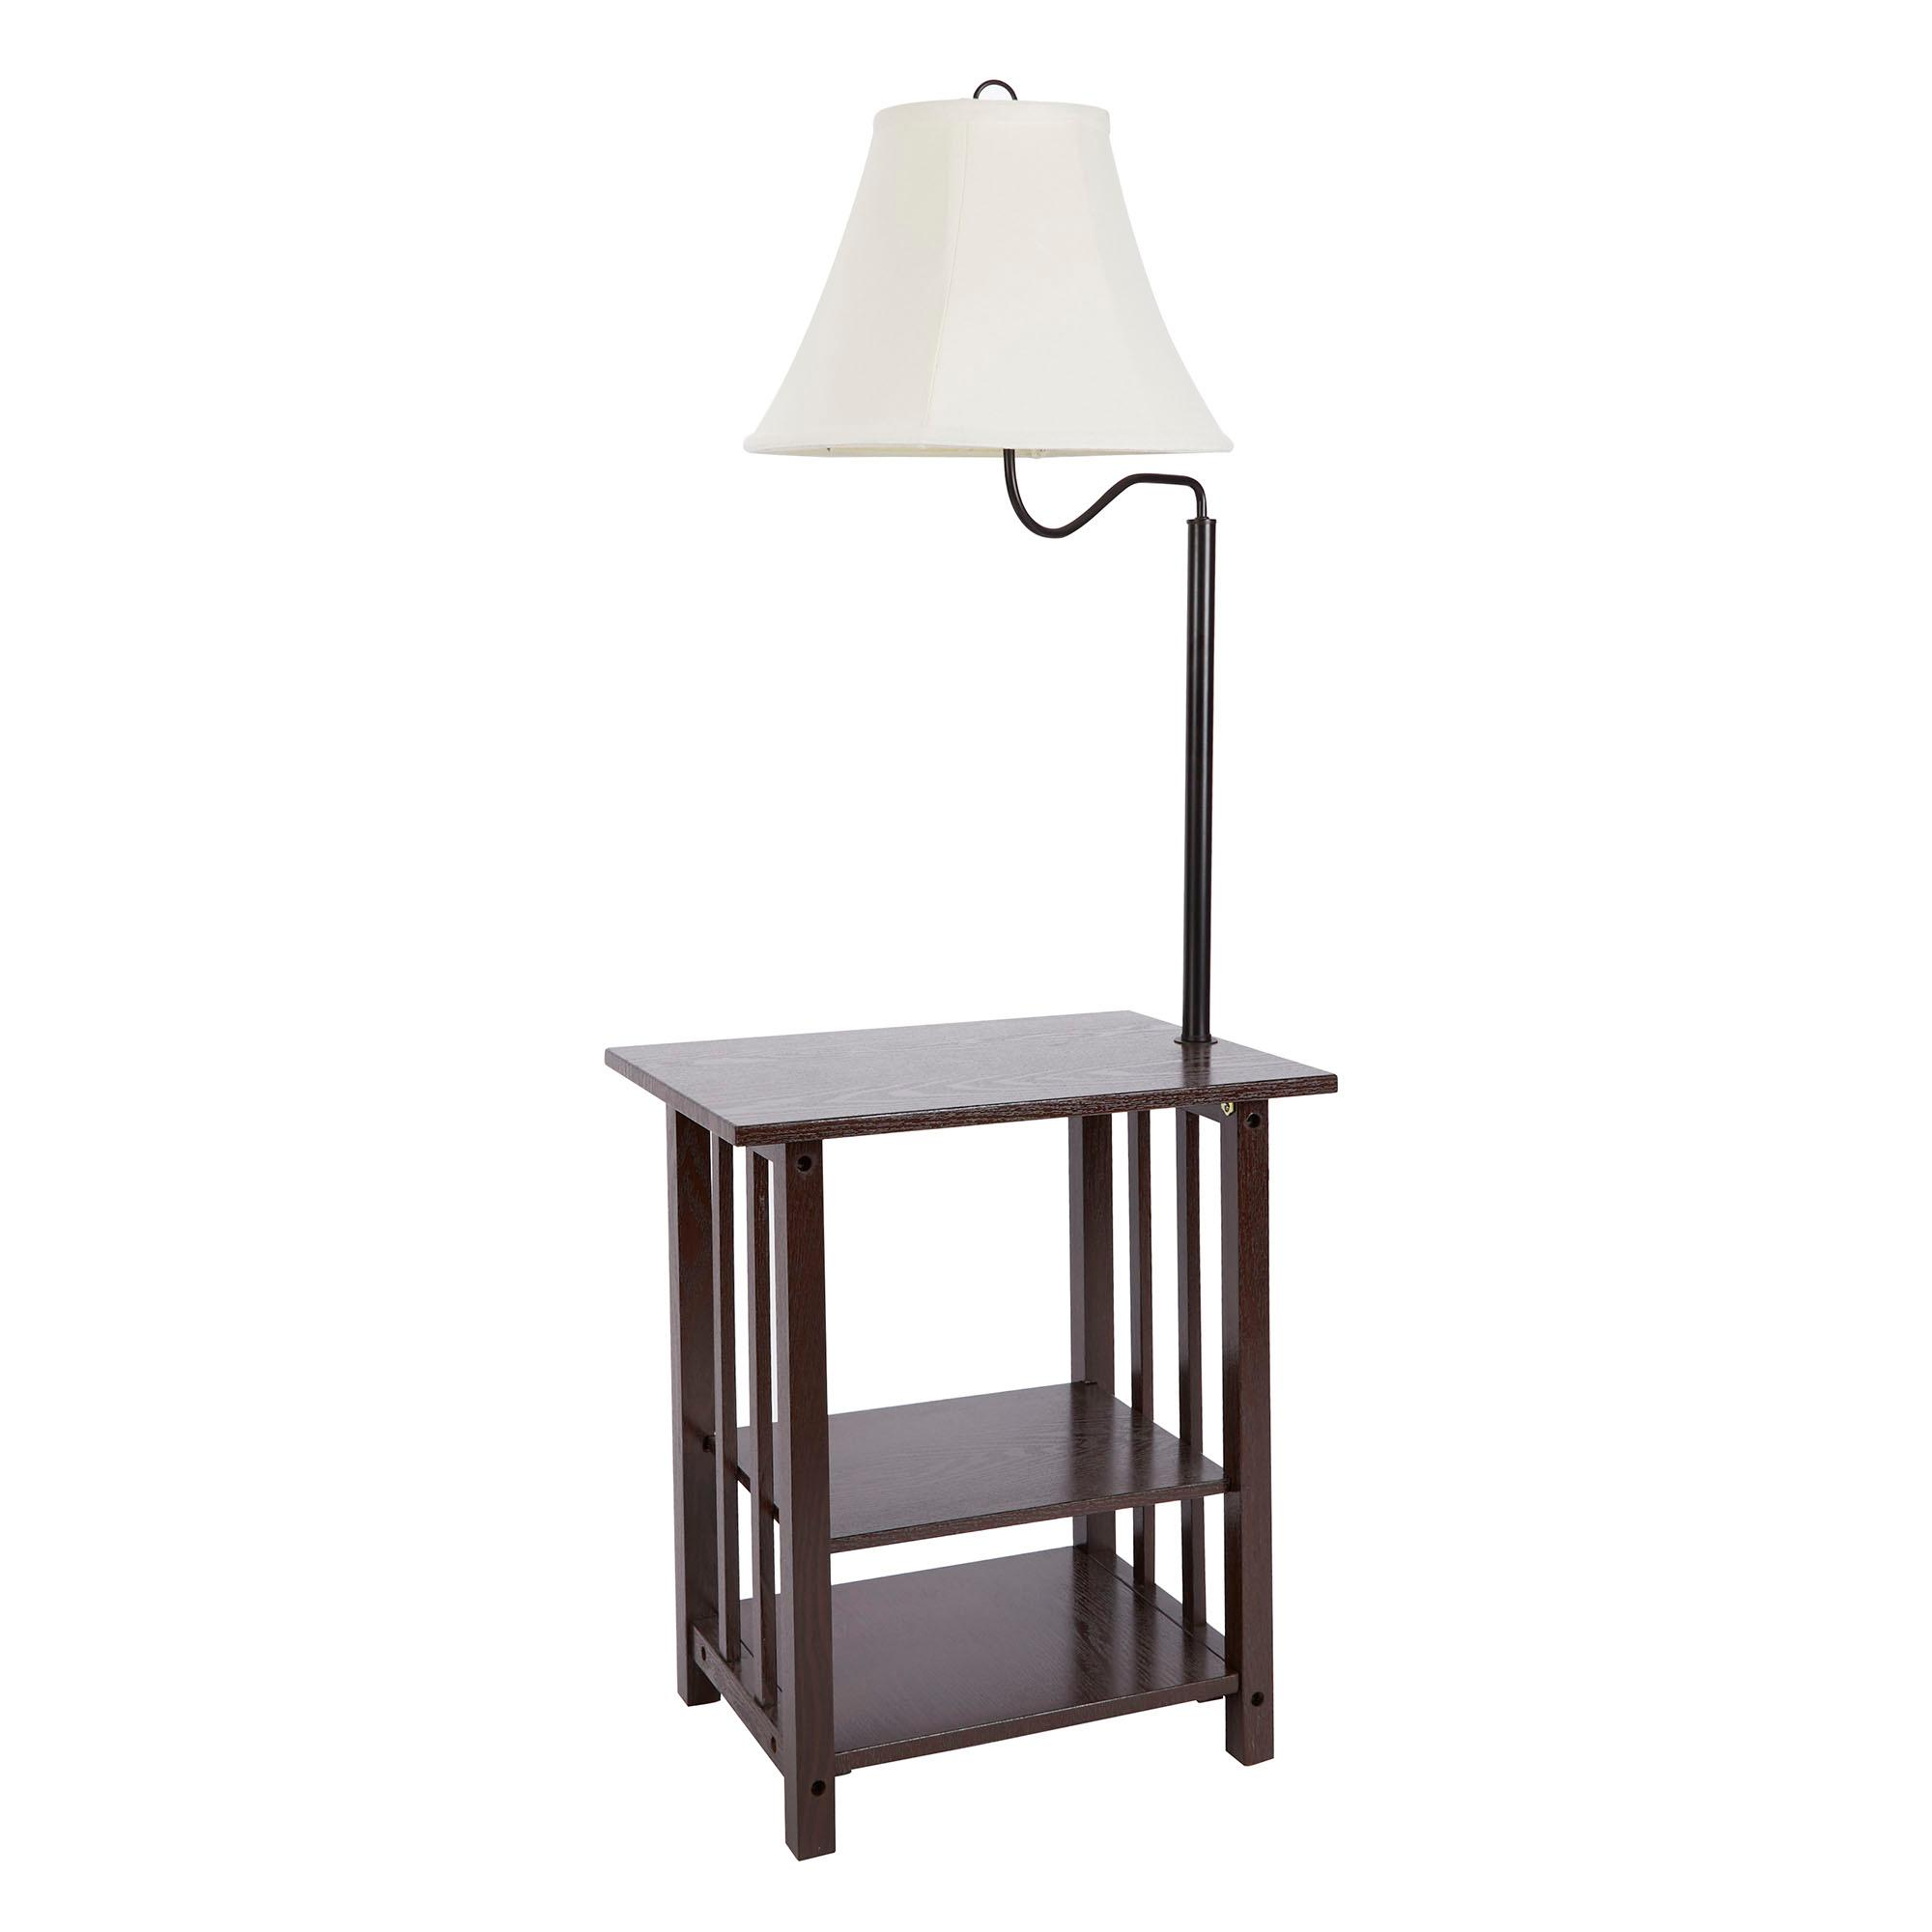 End Table With Lamp Built In Better Homes And Gardens 3 Rack End Table Floor Lamp Cfl Bulb Included